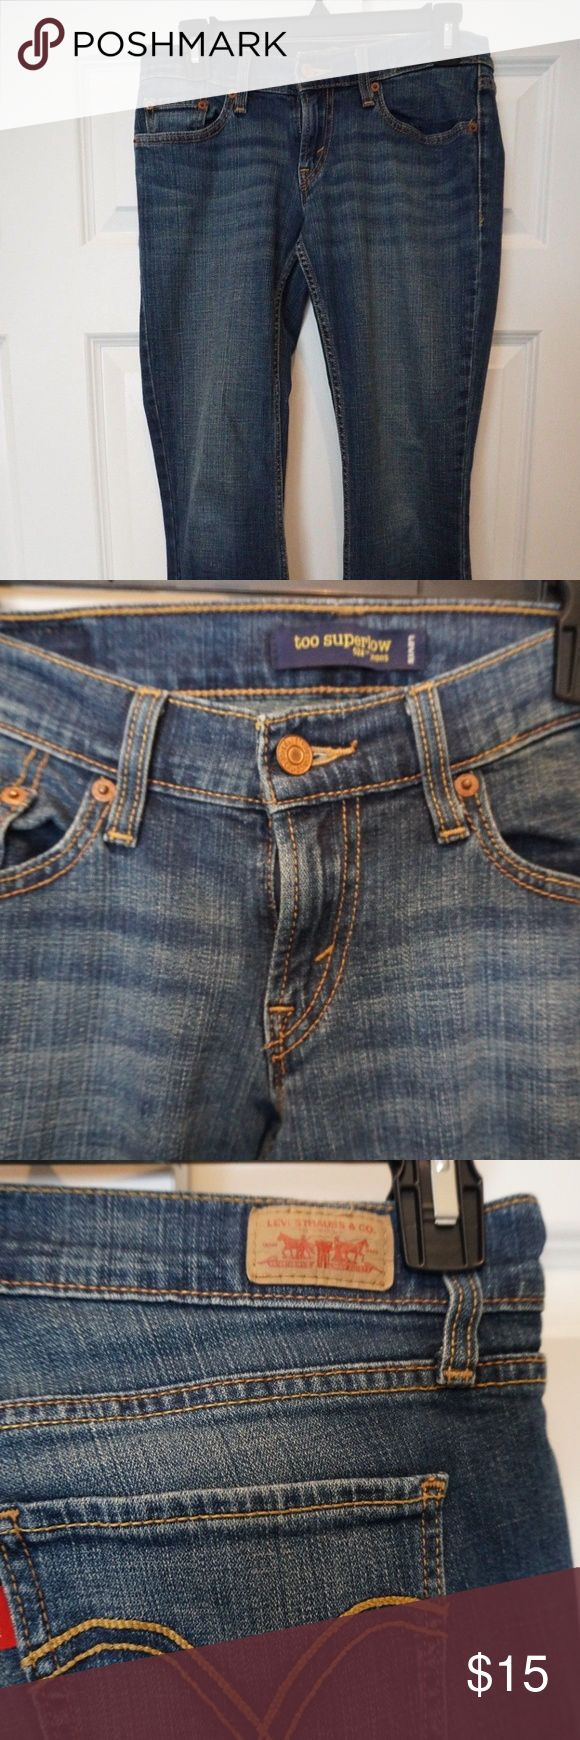 Levis 524 Too Superlow Size 3 28X29 LIKE NEW CONDITION - SEE PHOTOS!  Item# B1 Levi's Jeans